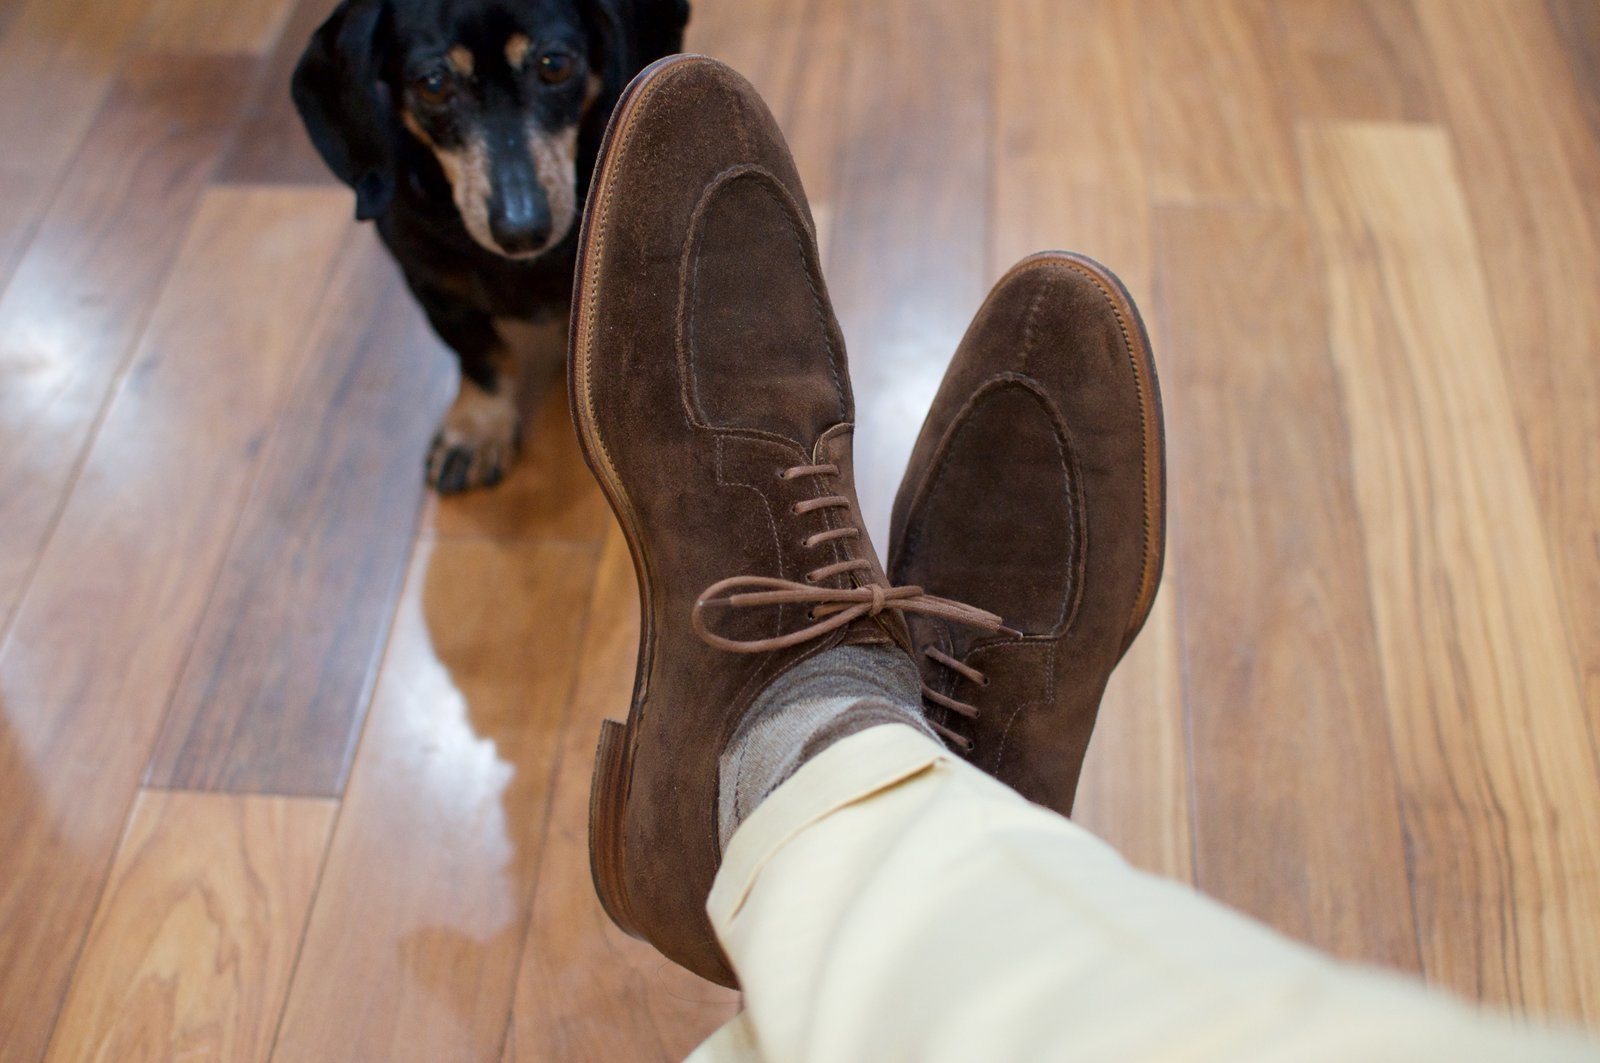 Edward Green Otter Suede Dovers - 2020-02-19 - 8.jpg